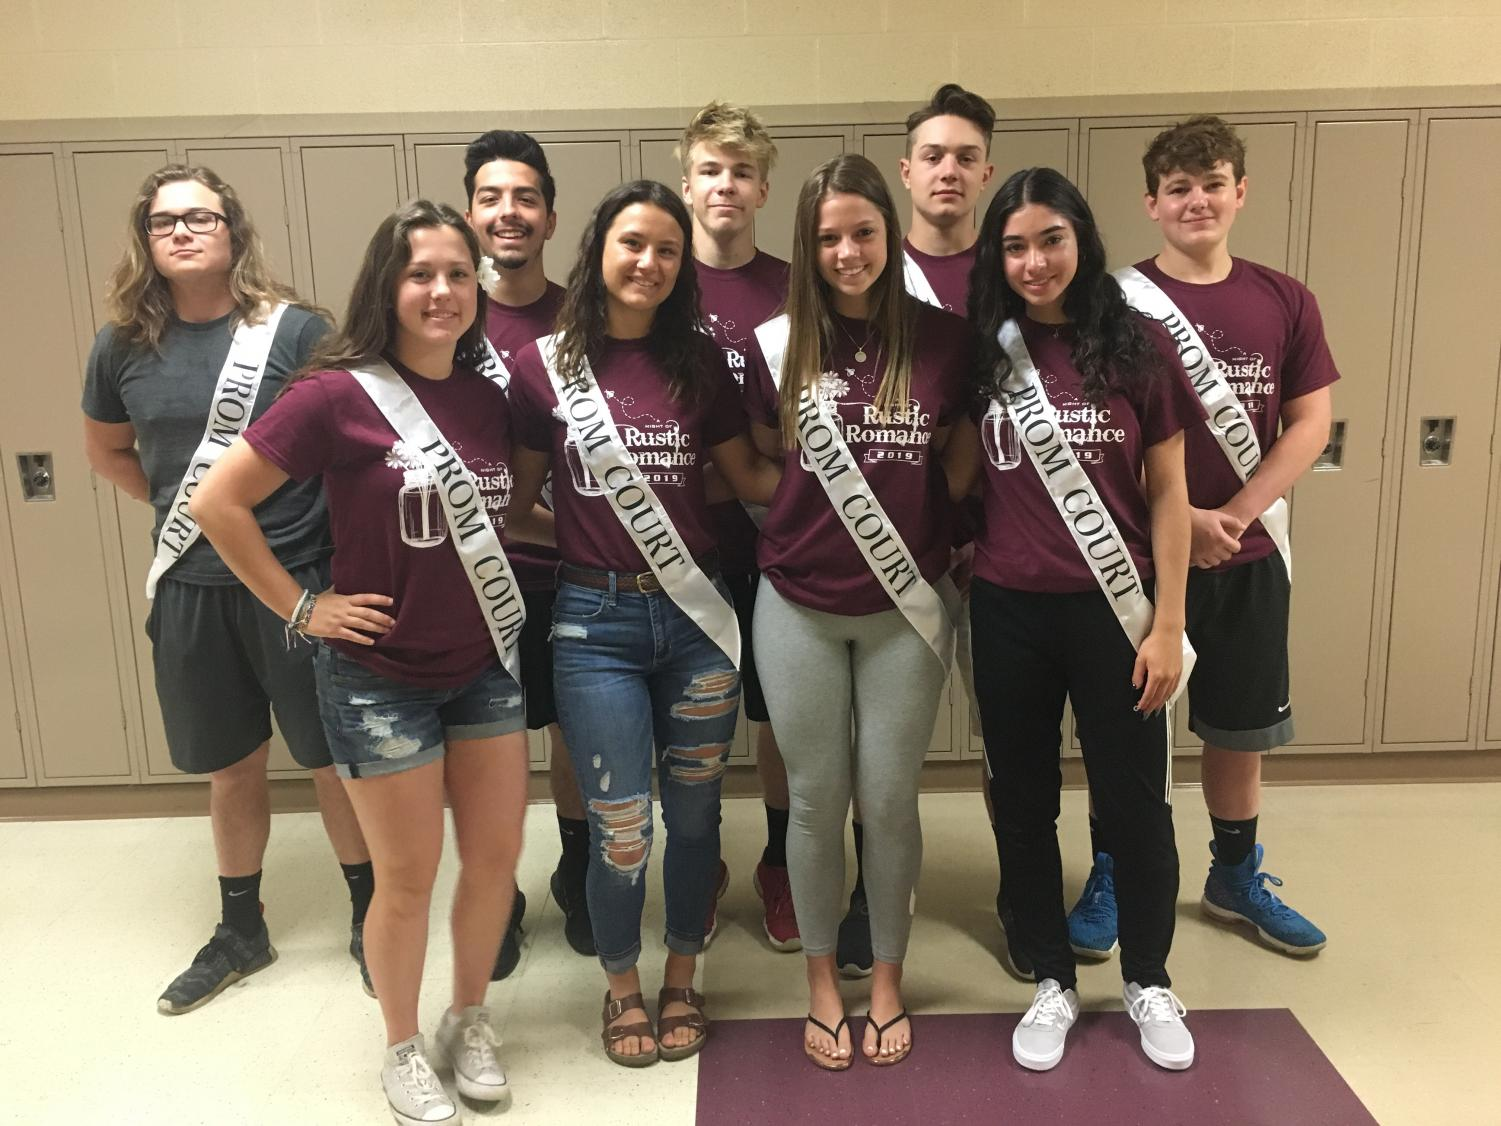 Back row: Shane Davis, Michael Liberato, Ryan Staton, Jakob Fay, and Logan Firby.  Front row: Alyssa Deak, Megan Fultz, Courtney Mercer, Rena Costello, (Not pictured Kaylee Rader, MCCTC)